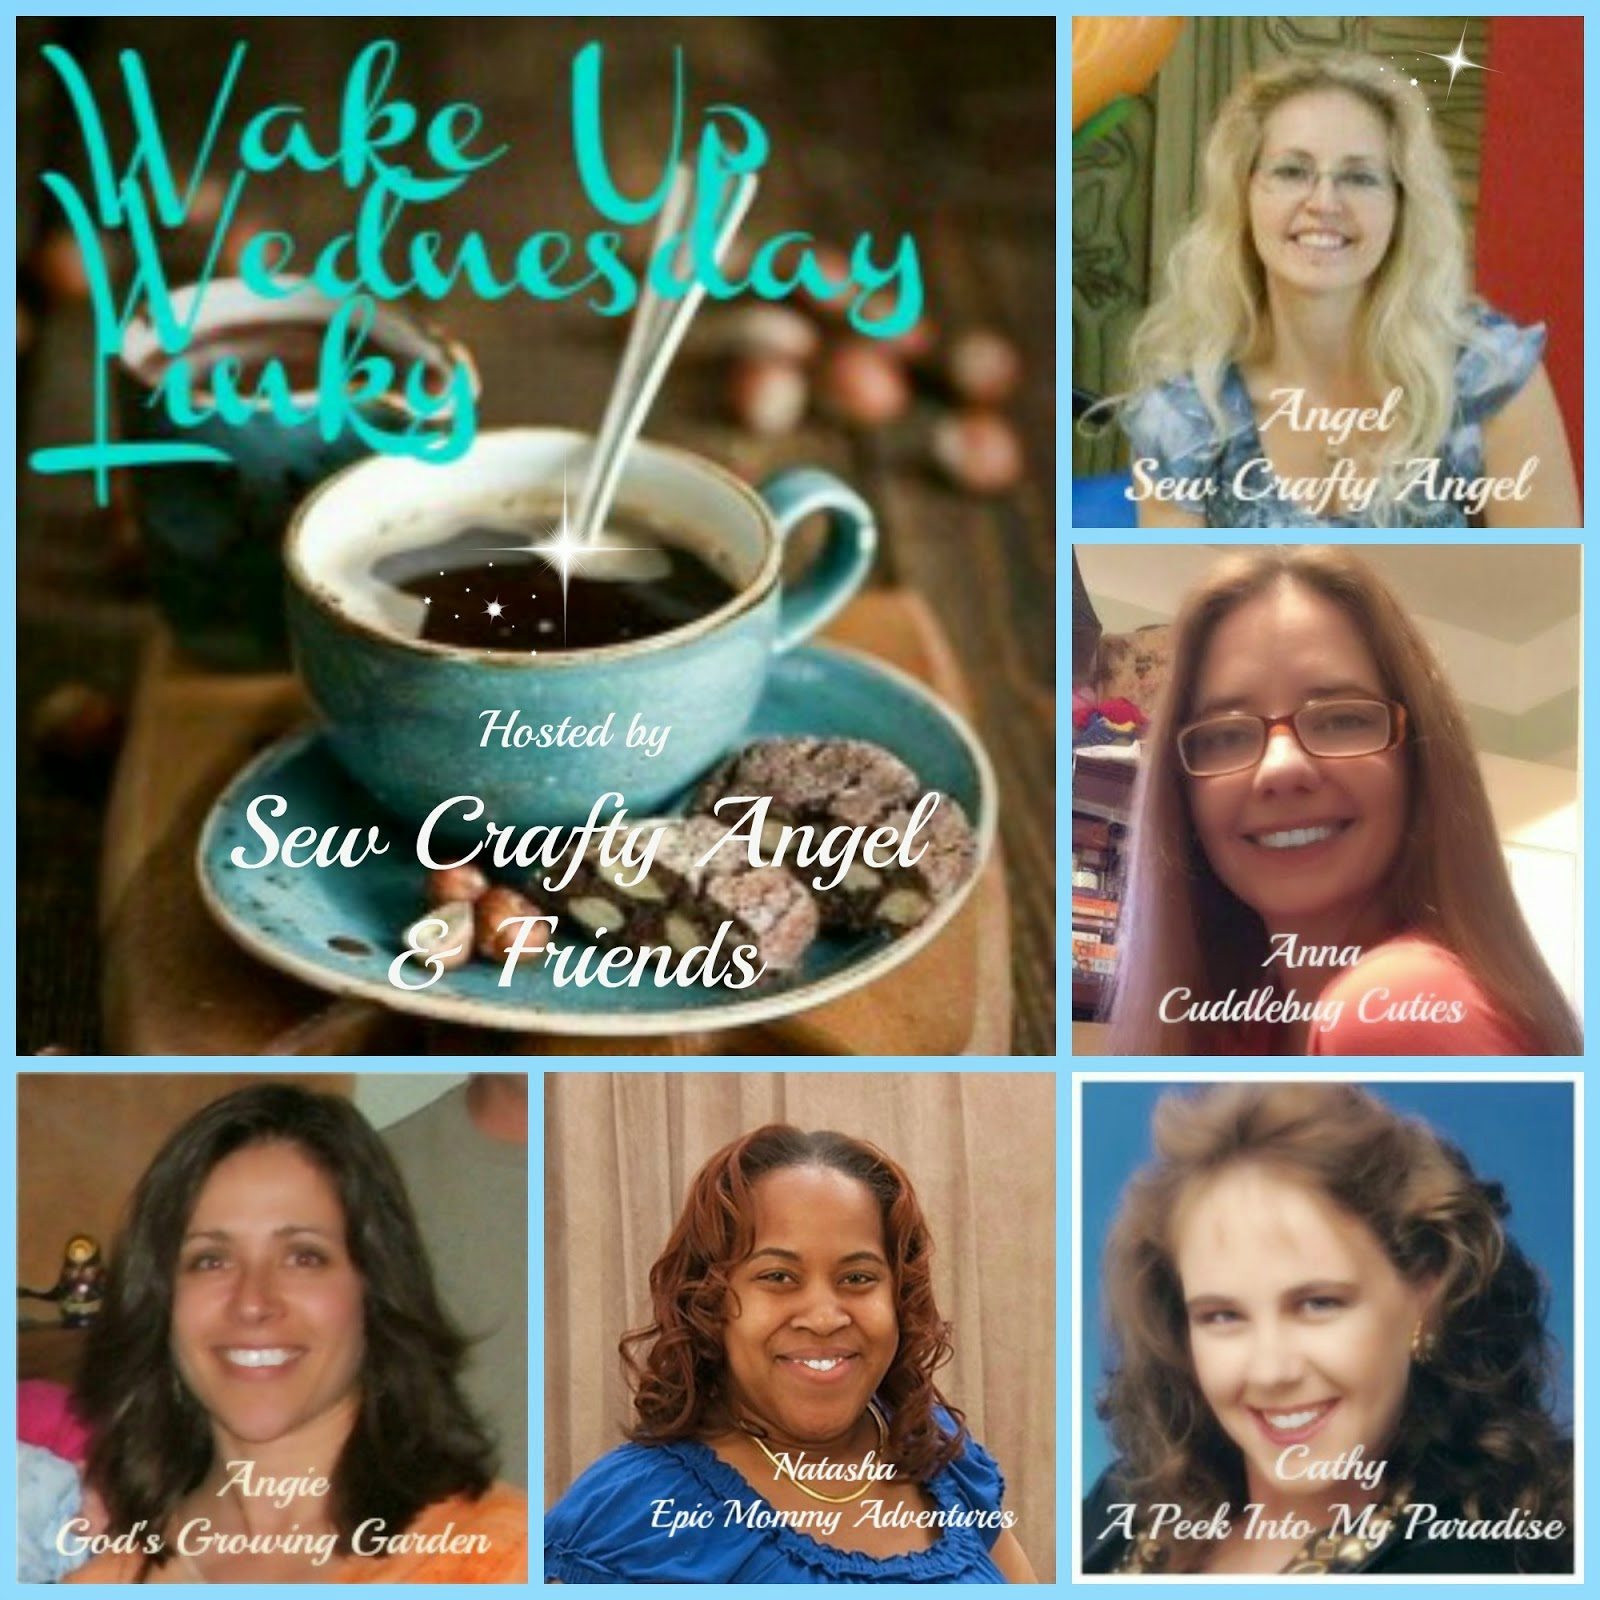 http://sewcraftyangel.blogspot.com/2015/04/wake-up-wednesday-linky-party-63.html